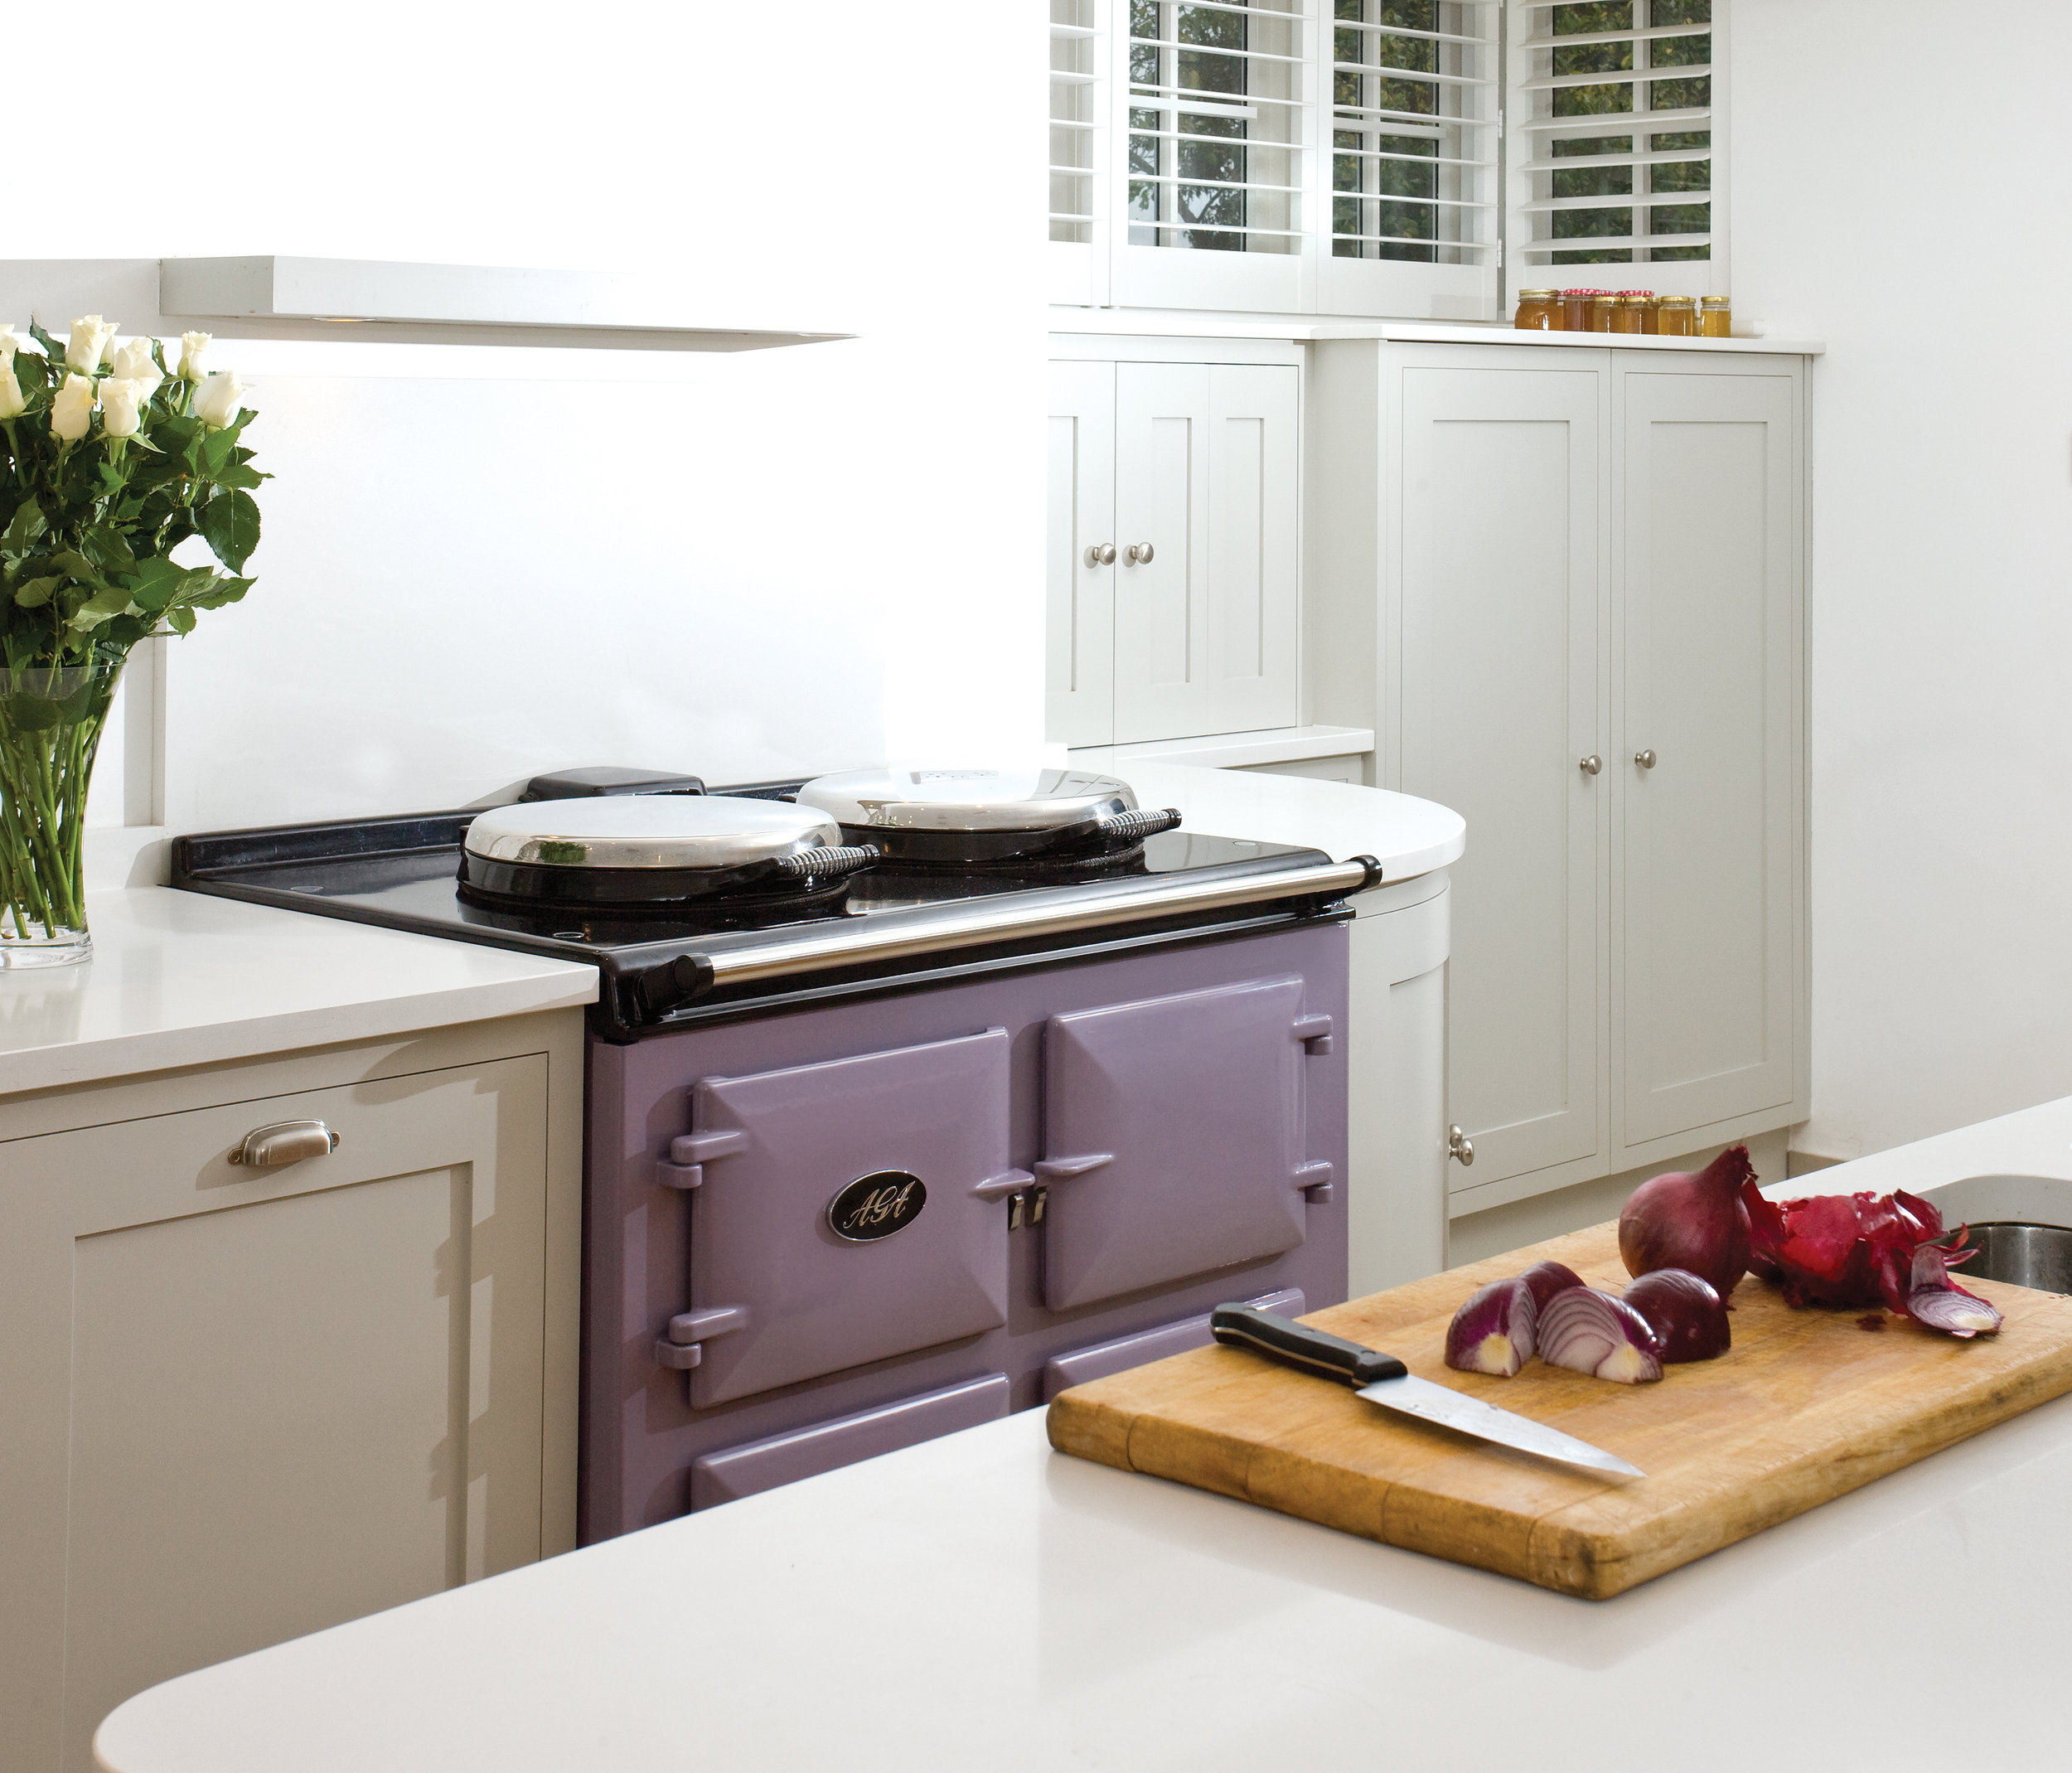 AGA Dual Control 3-oven cooker in Heather